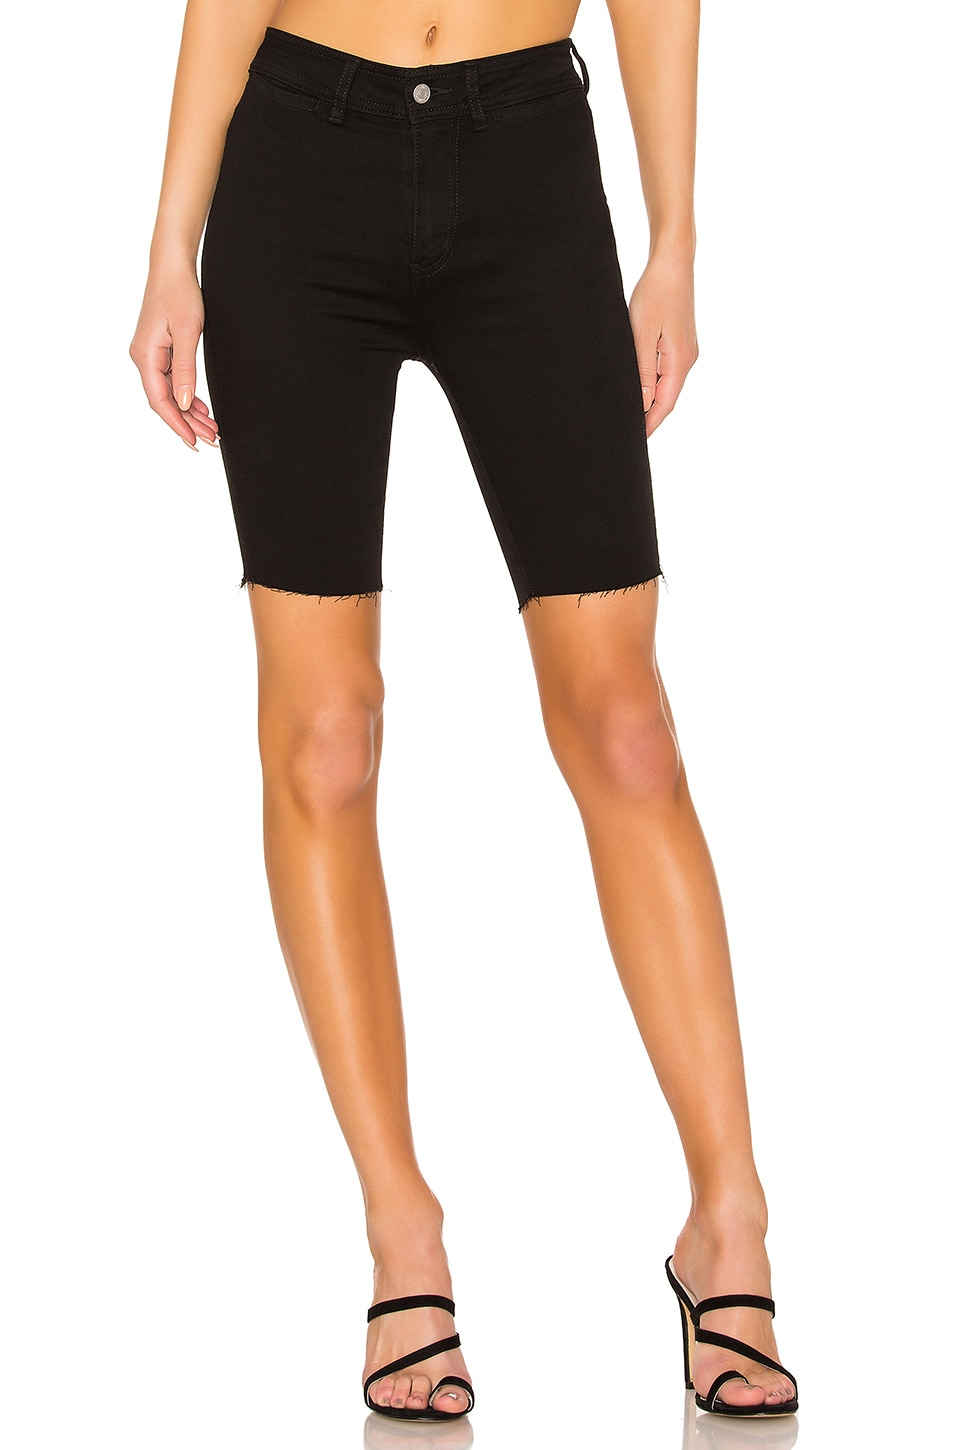 Free People So Chic Biker Short en Black